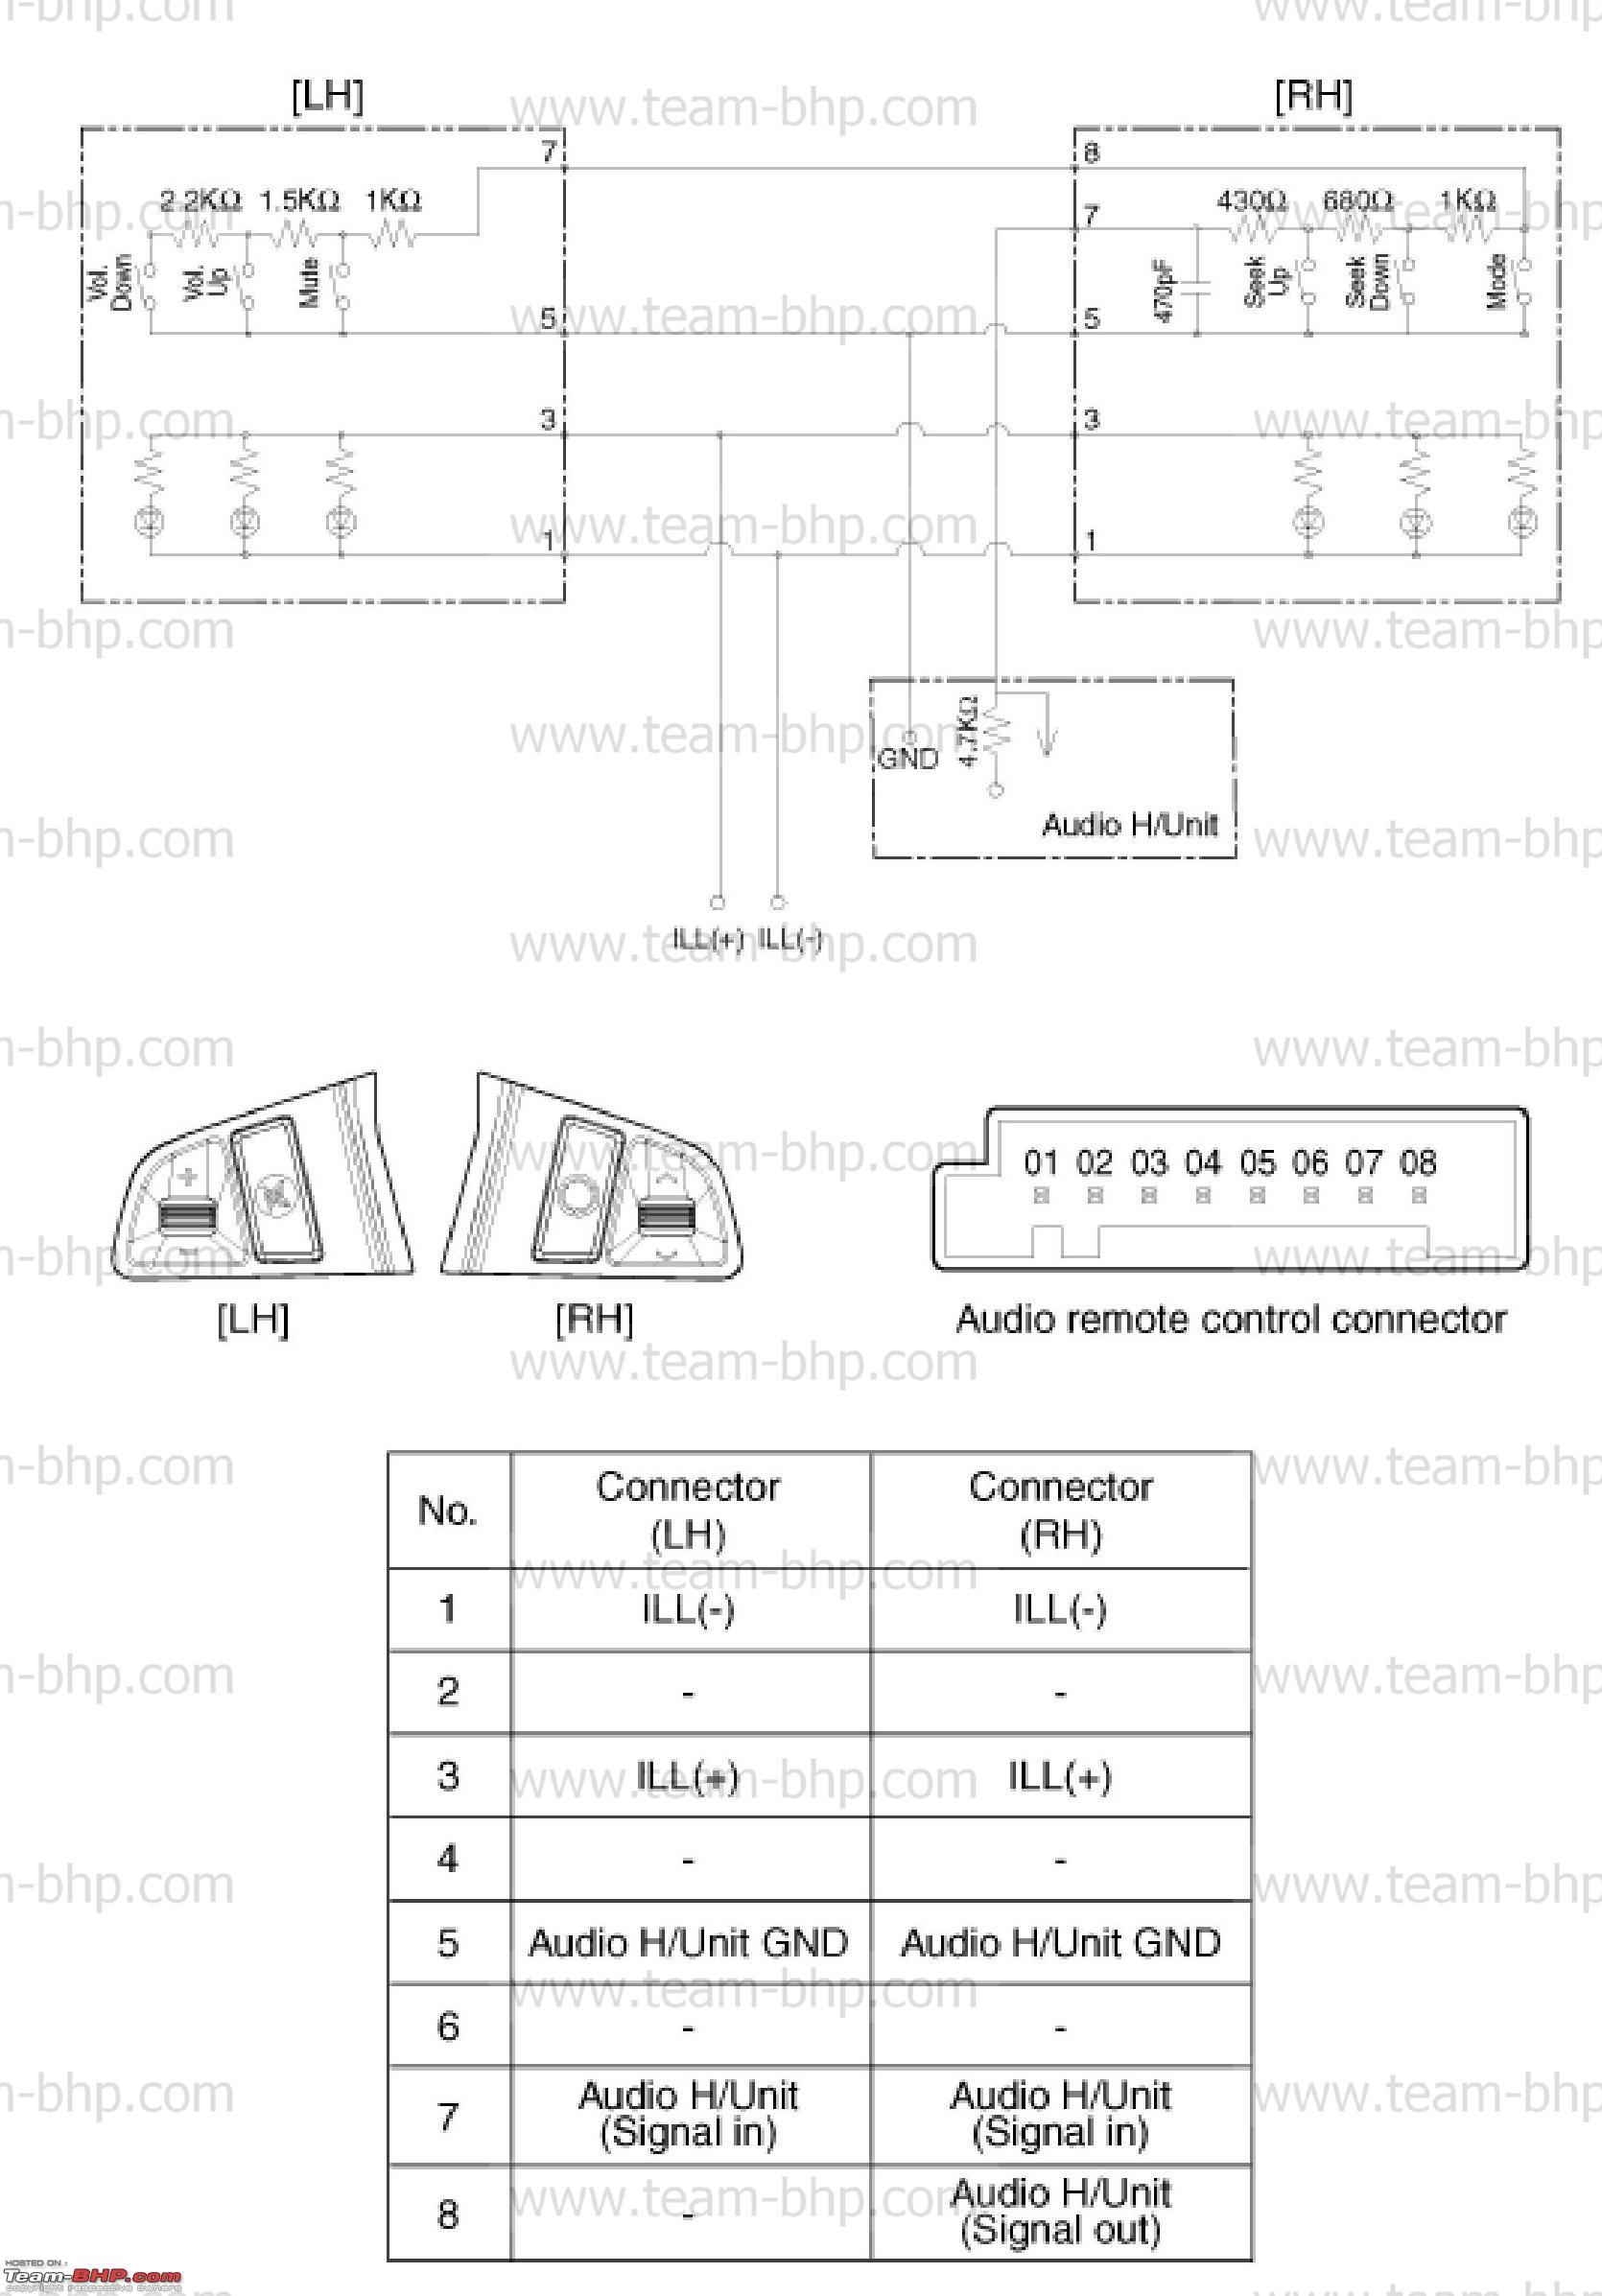 Hyundai I20 Wiring Diagram List Of Schematic Circuit 2013 Sonata Speaker Take Out Your Hu Team Bhp Rh Com Stereo